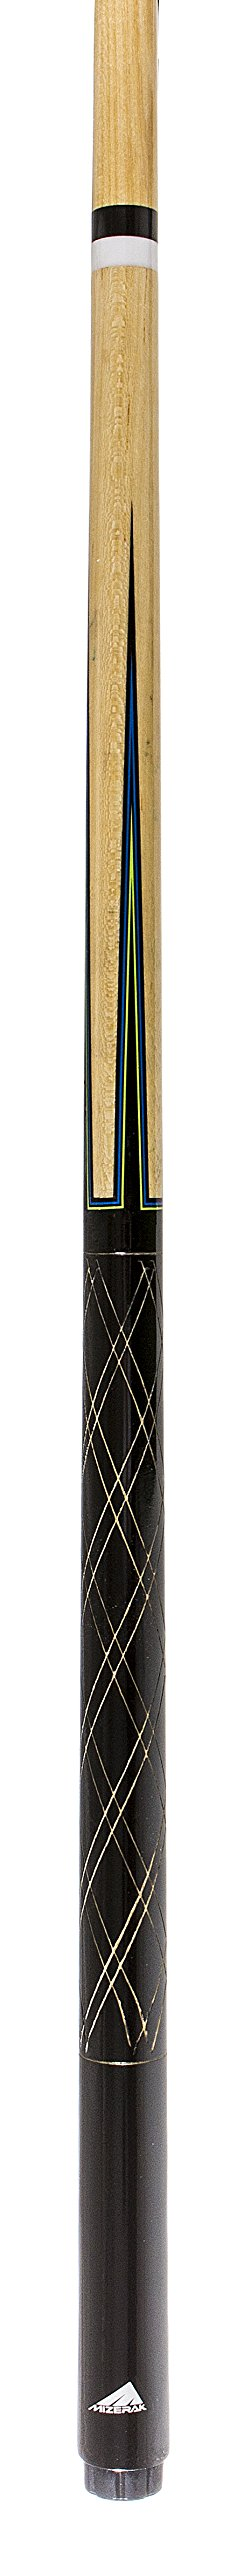 Mizerak 57'' House Cue (2-Piece) with 12mm Ferrule with Leather Tip, Hardwood Construction and High Gloss Finish